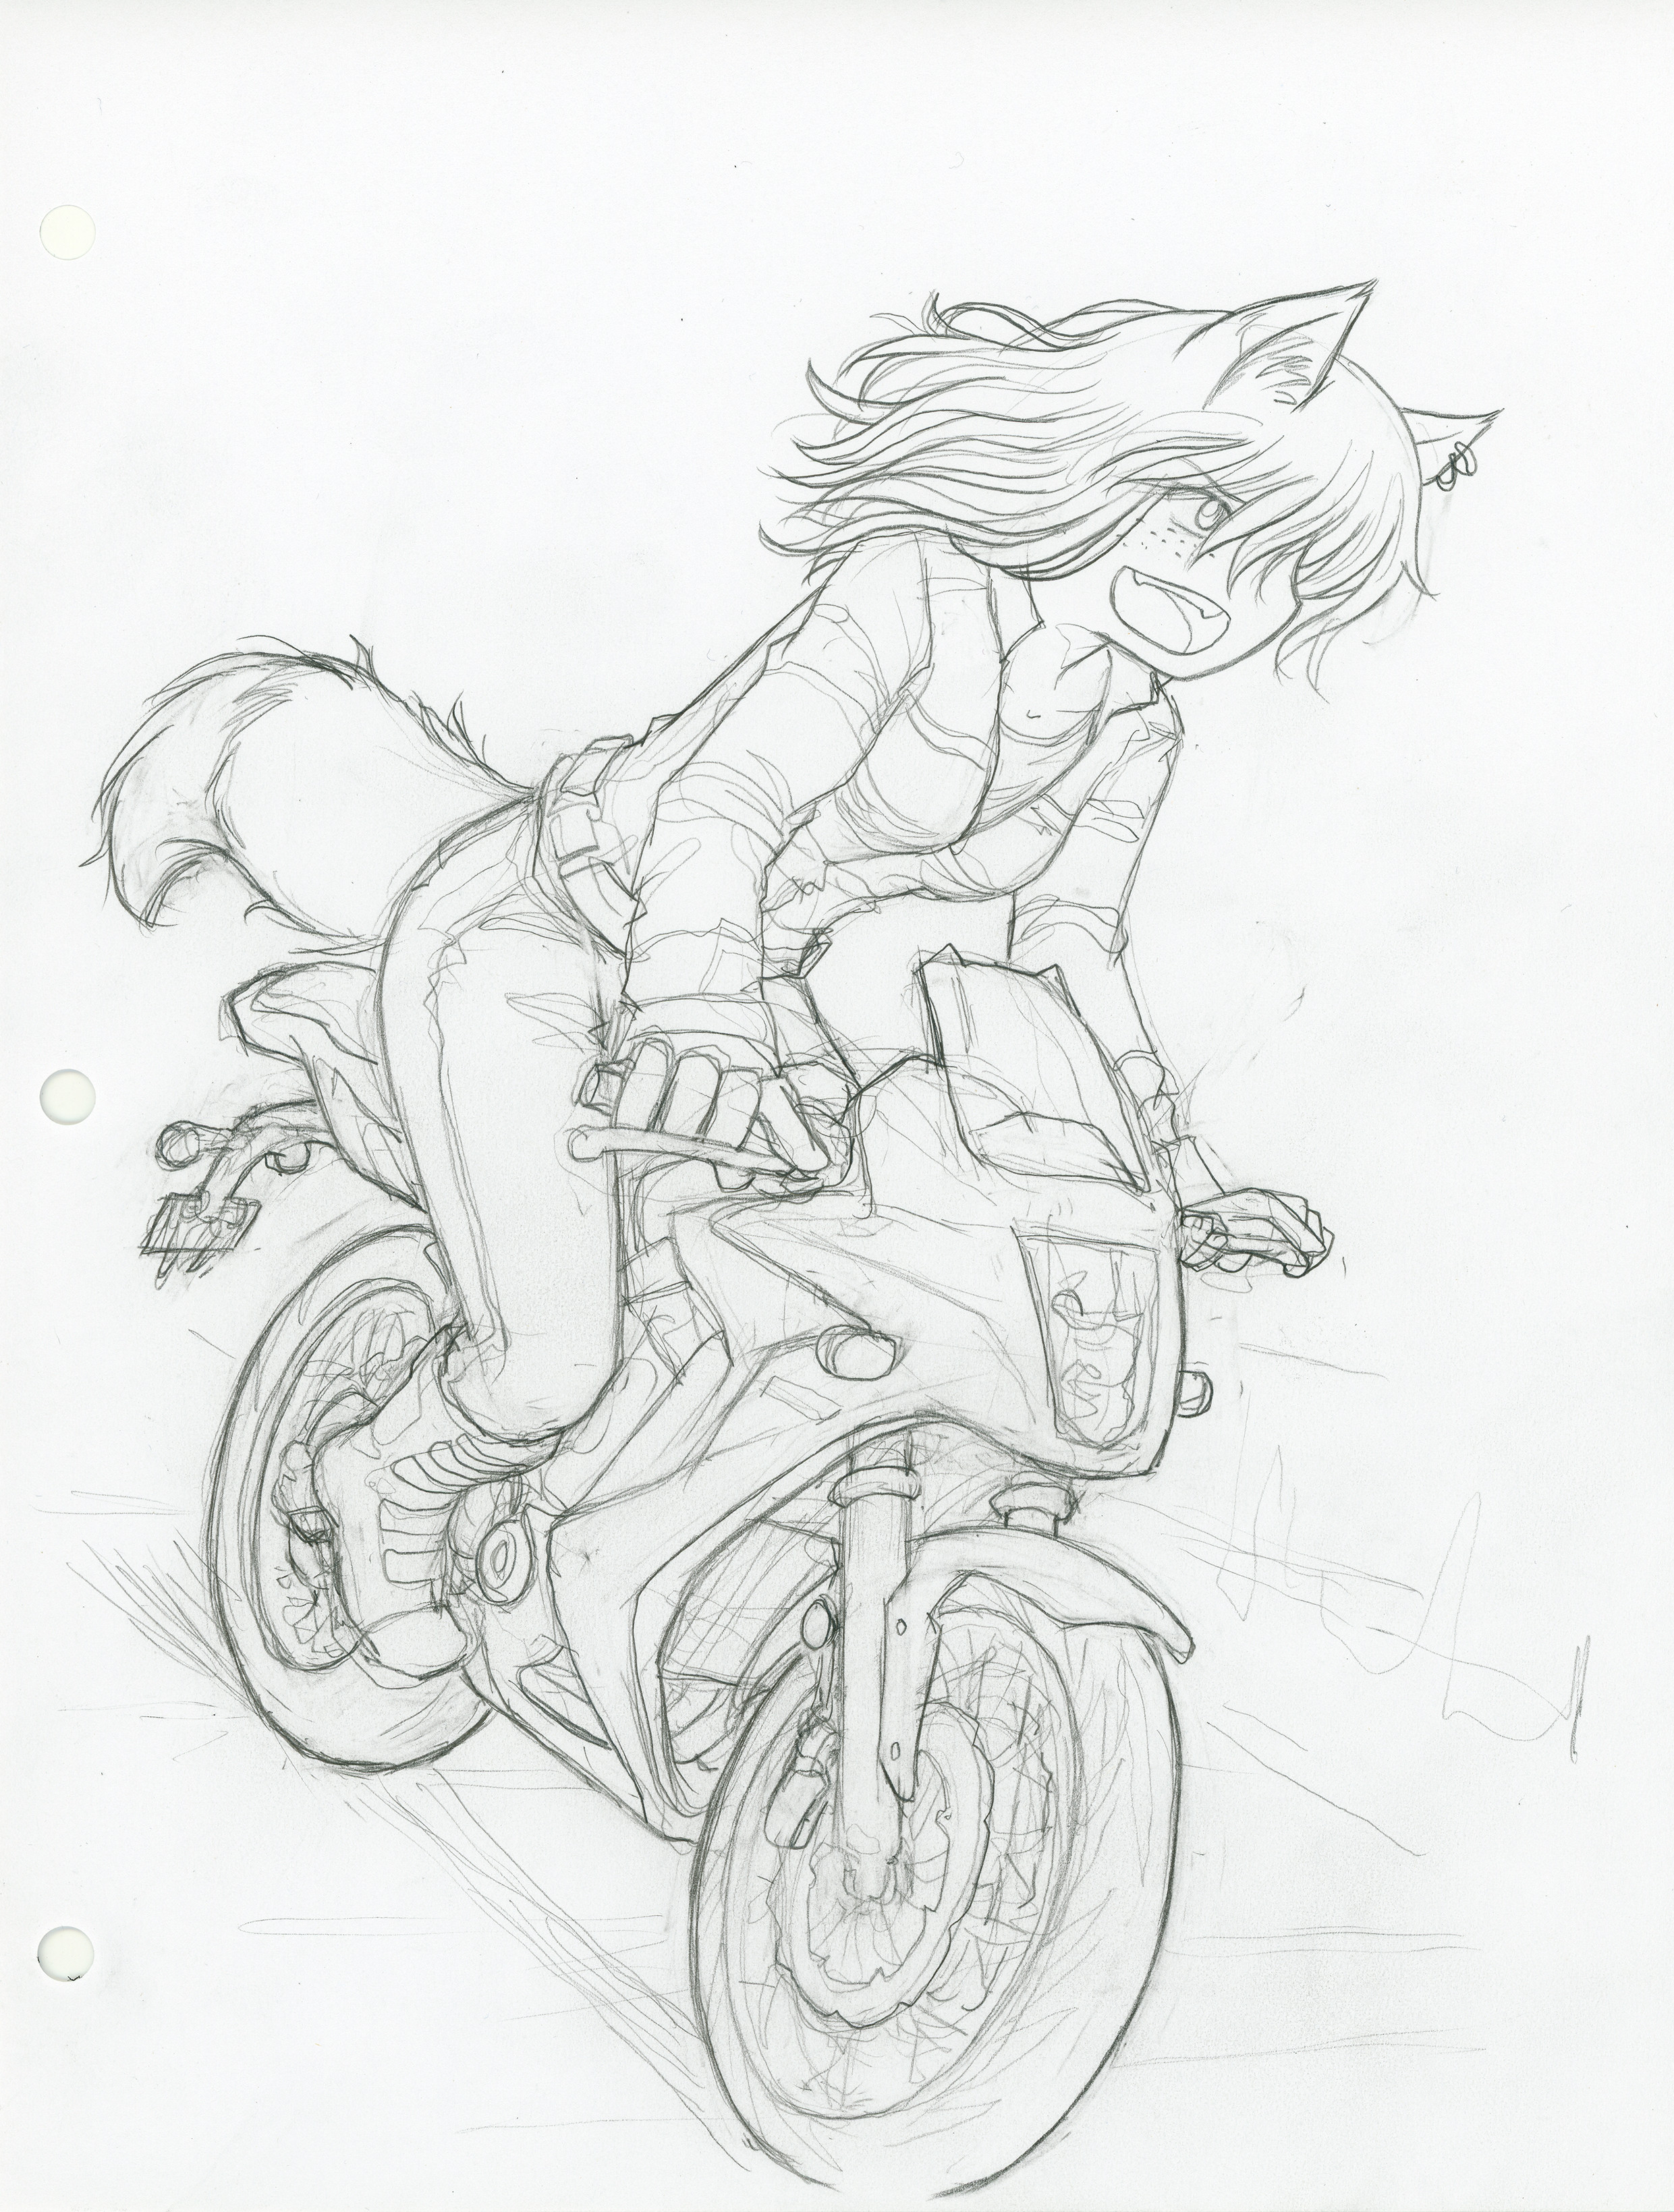 Irresponsible mugi with no helmet :P  Had to add a helmet. :)